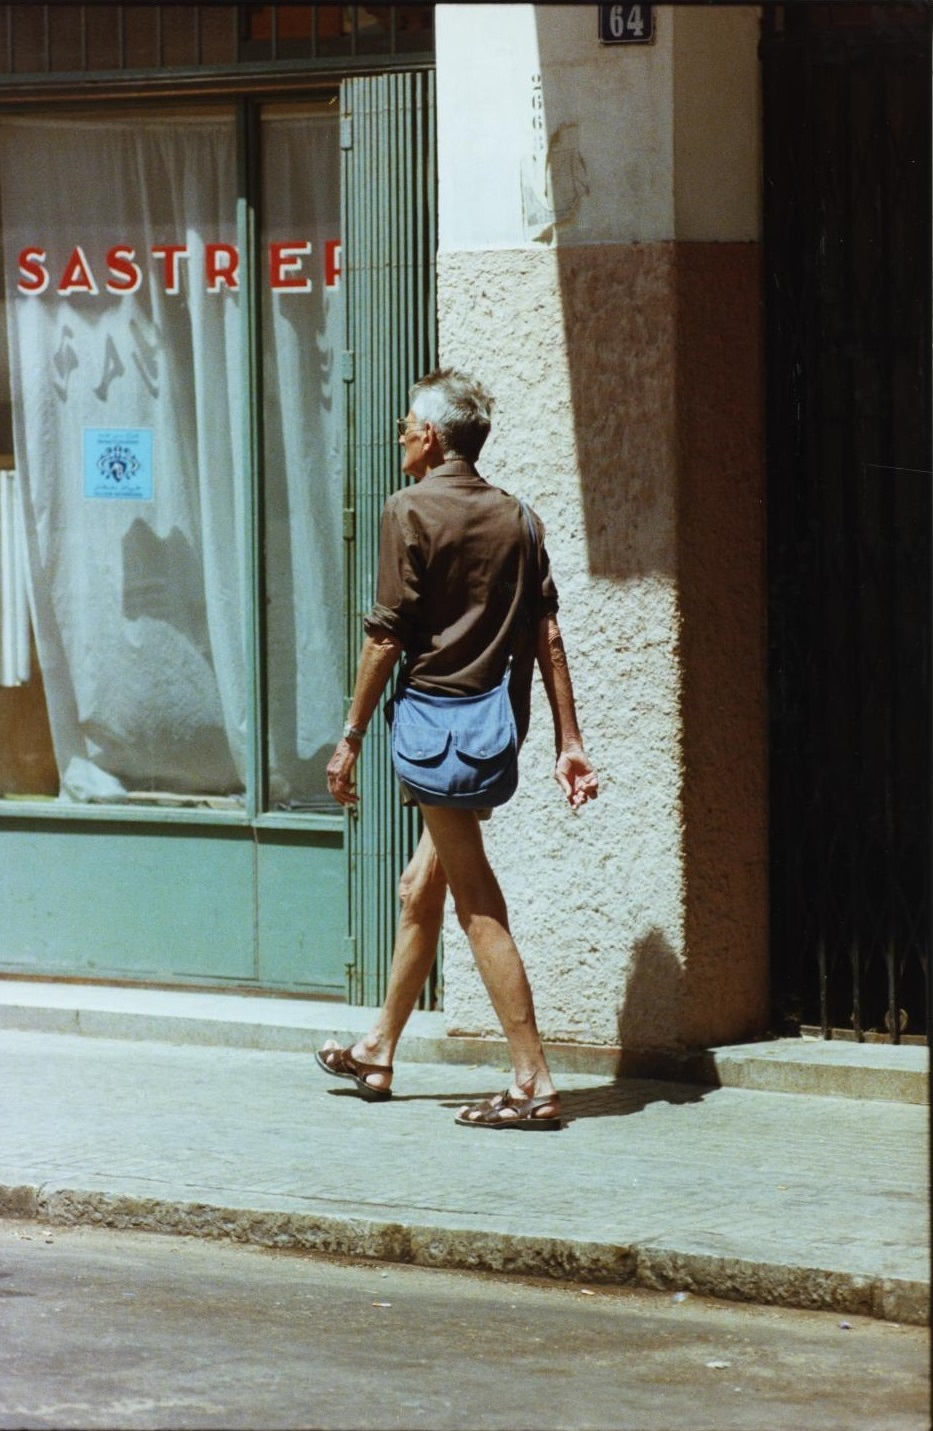 samuel beckett walking